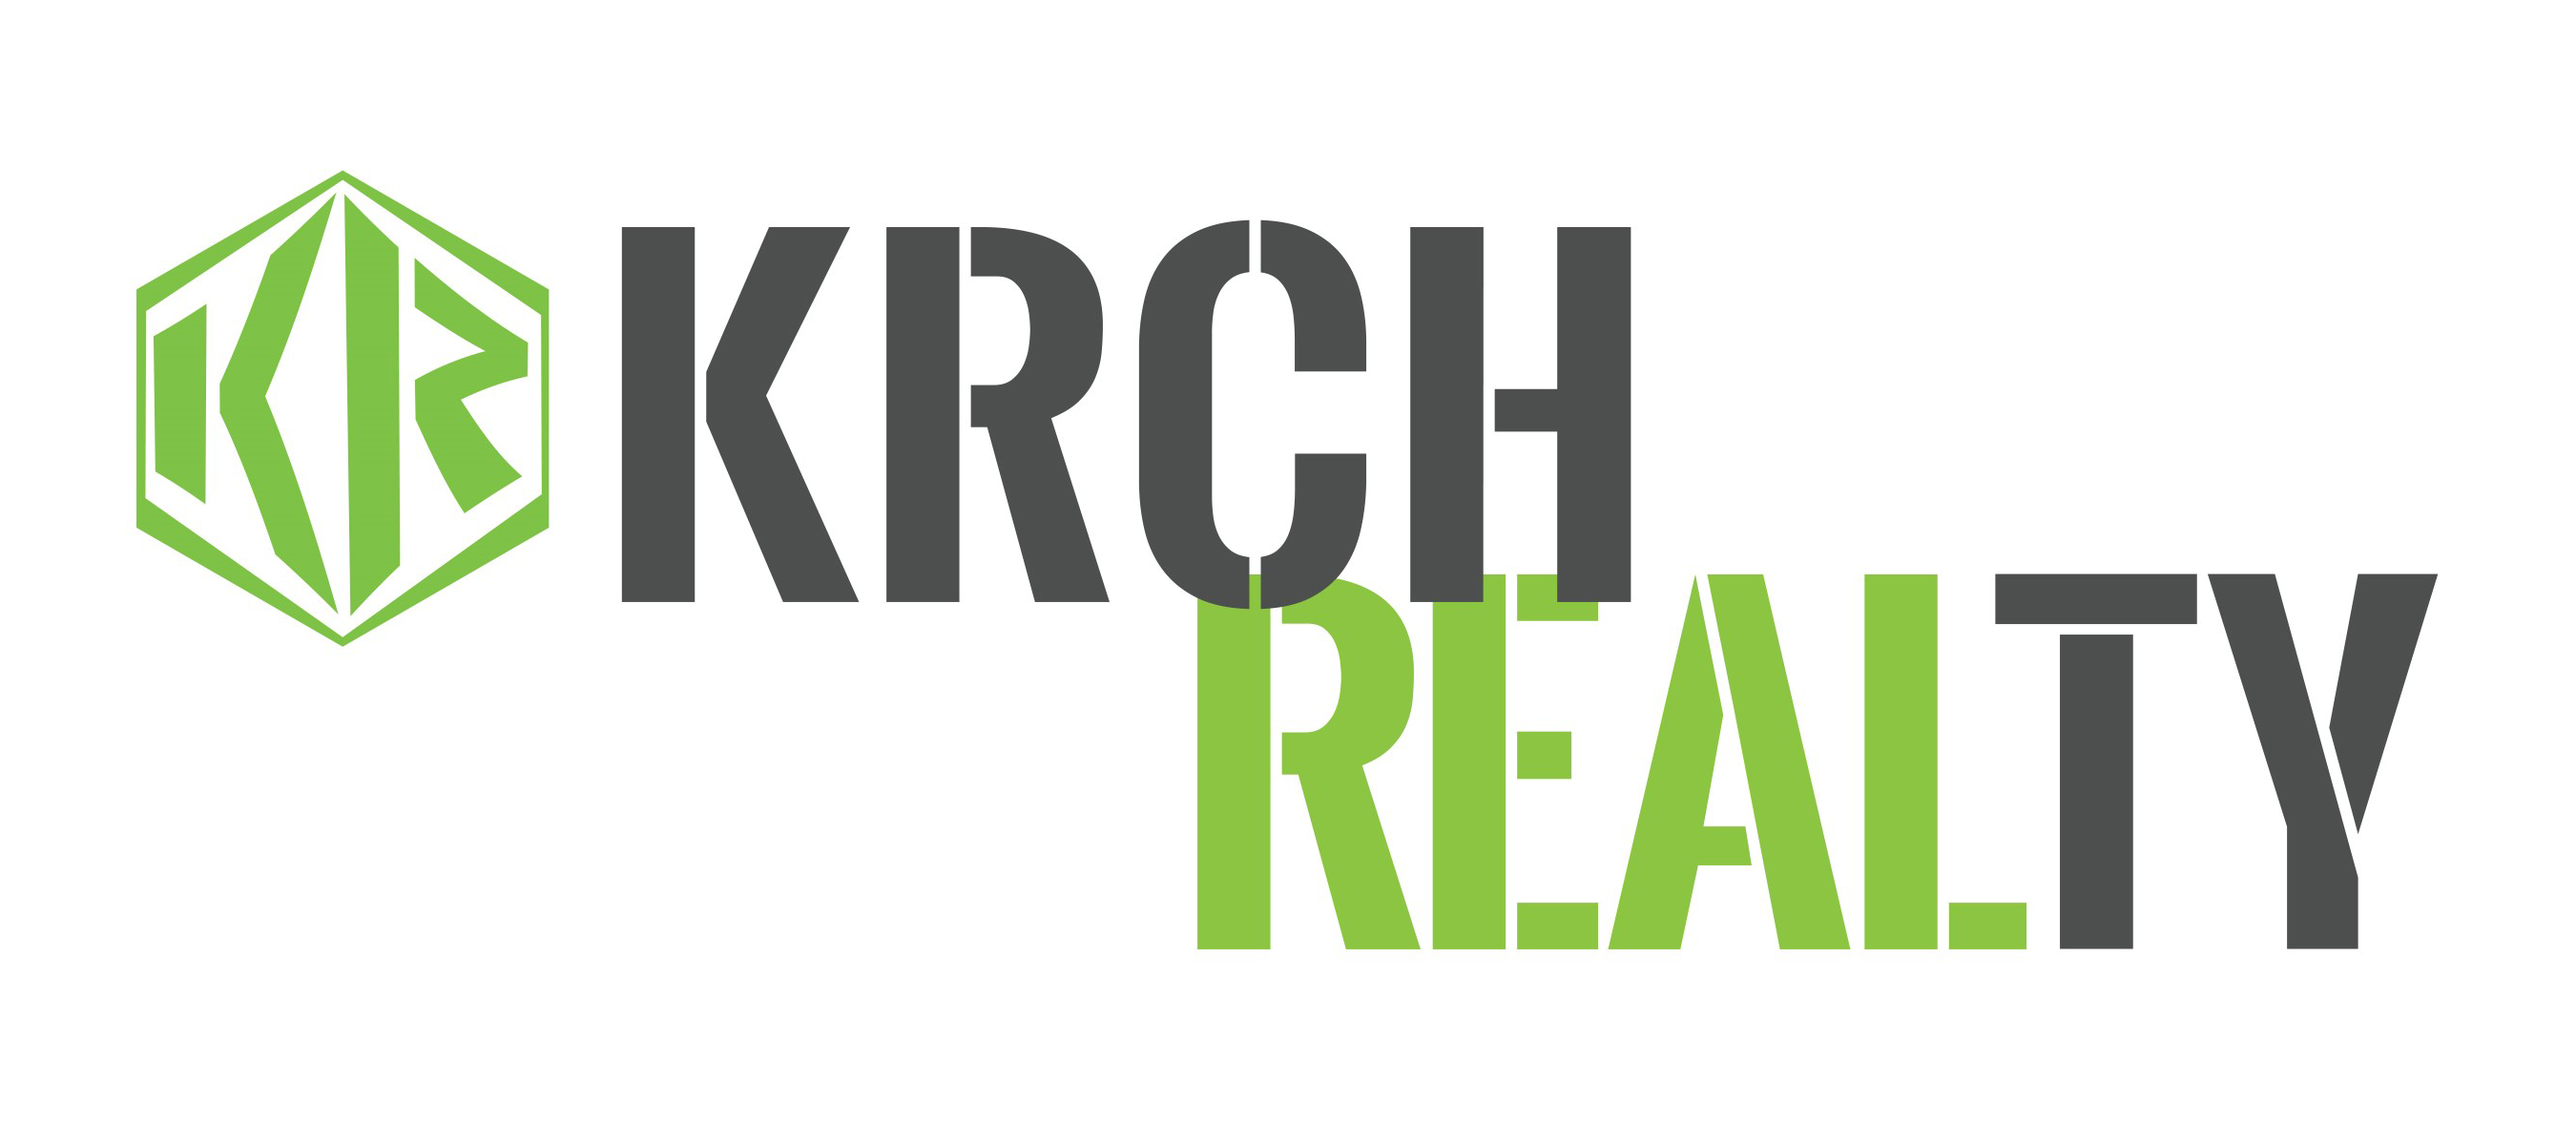 Krch Realty Announces New Agent Ownership Program for Krch Real Estate Agents in Nevada